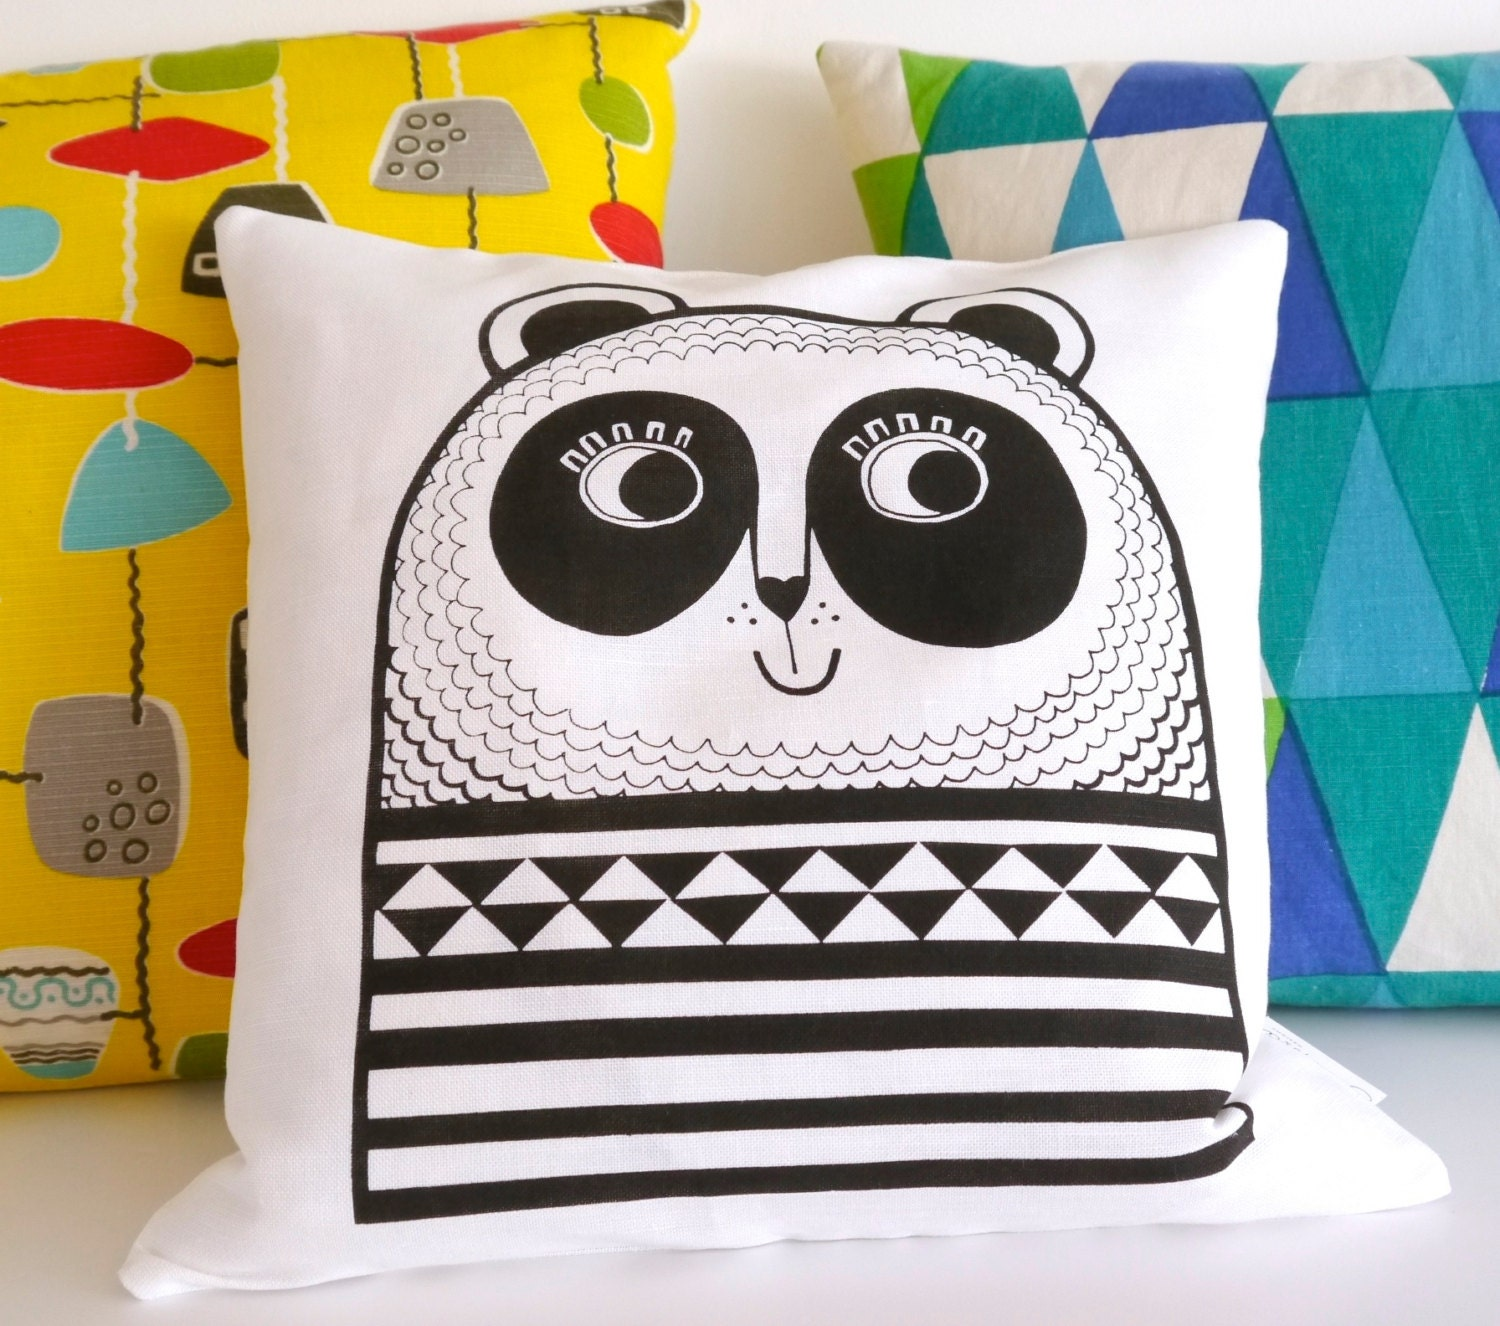 New Screen Printed Happy Panda Cushion by Jane Foster